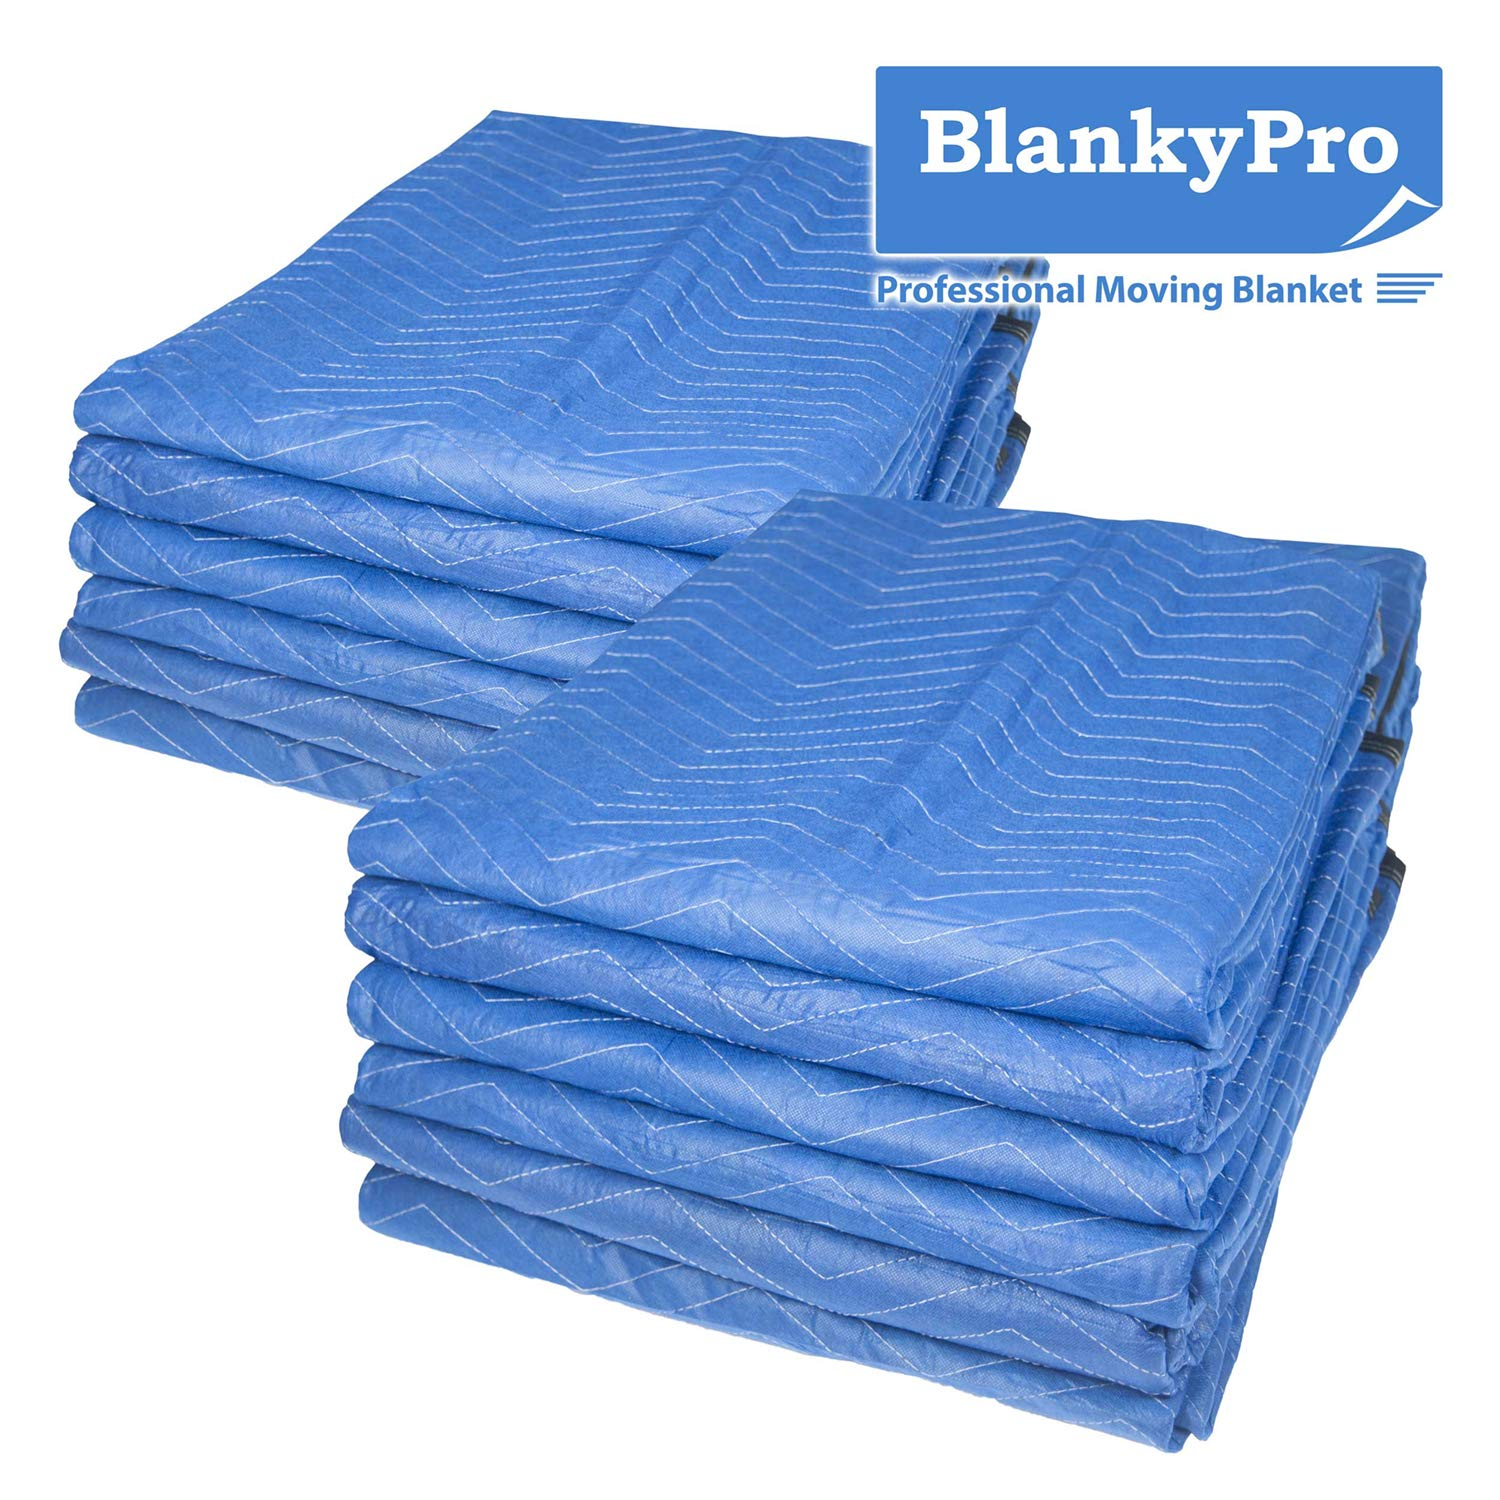 12-Pack Moving Blankets, BlankyPro 80'' x 72'' Non-Woven Heavy Duty Shipping Furniture Pad, Blueblack, Regular Thickness (35LB/dz Weight), Perfect for Moving Occasion